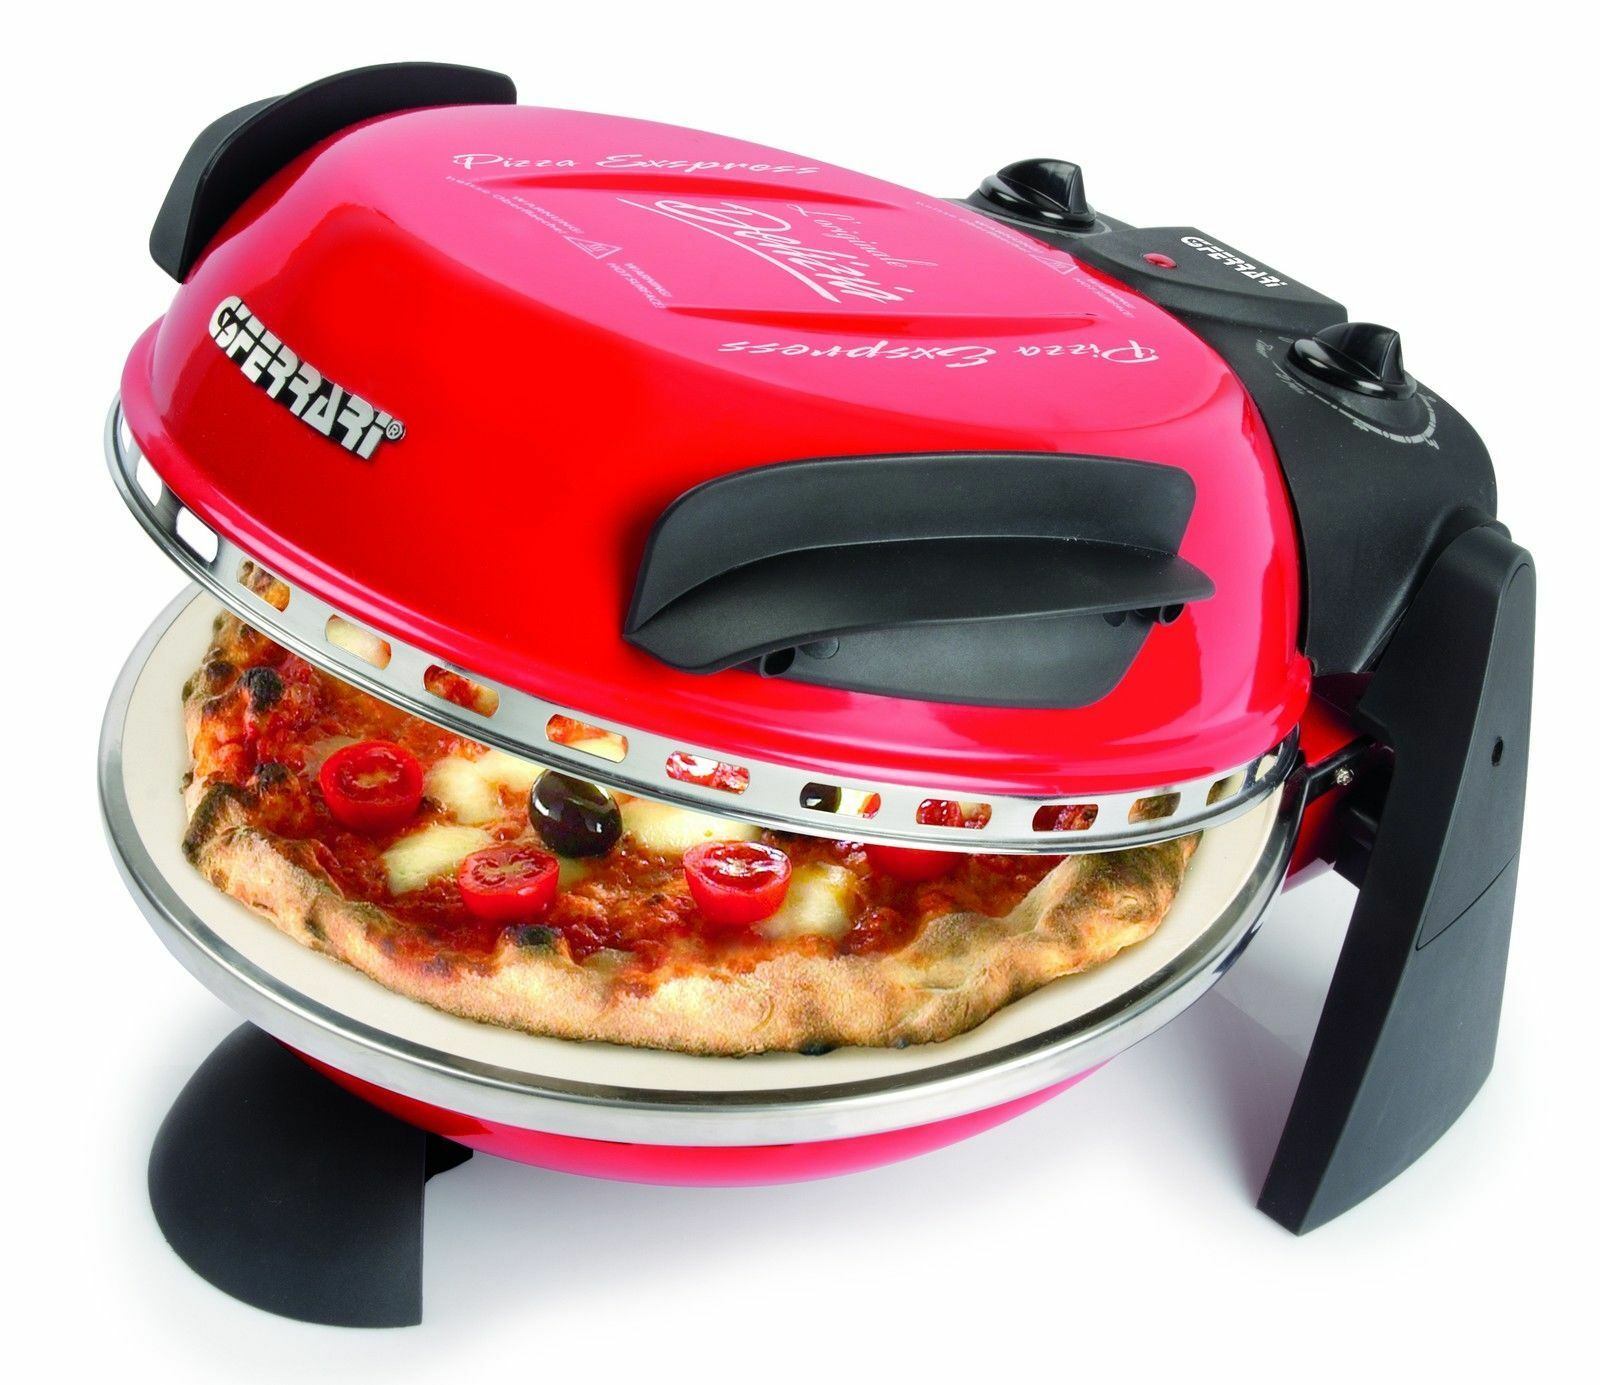 G3 Ferrari Pizza Oven Pizza Maker Express  Pizza in 3 min. finished rouge nouveau